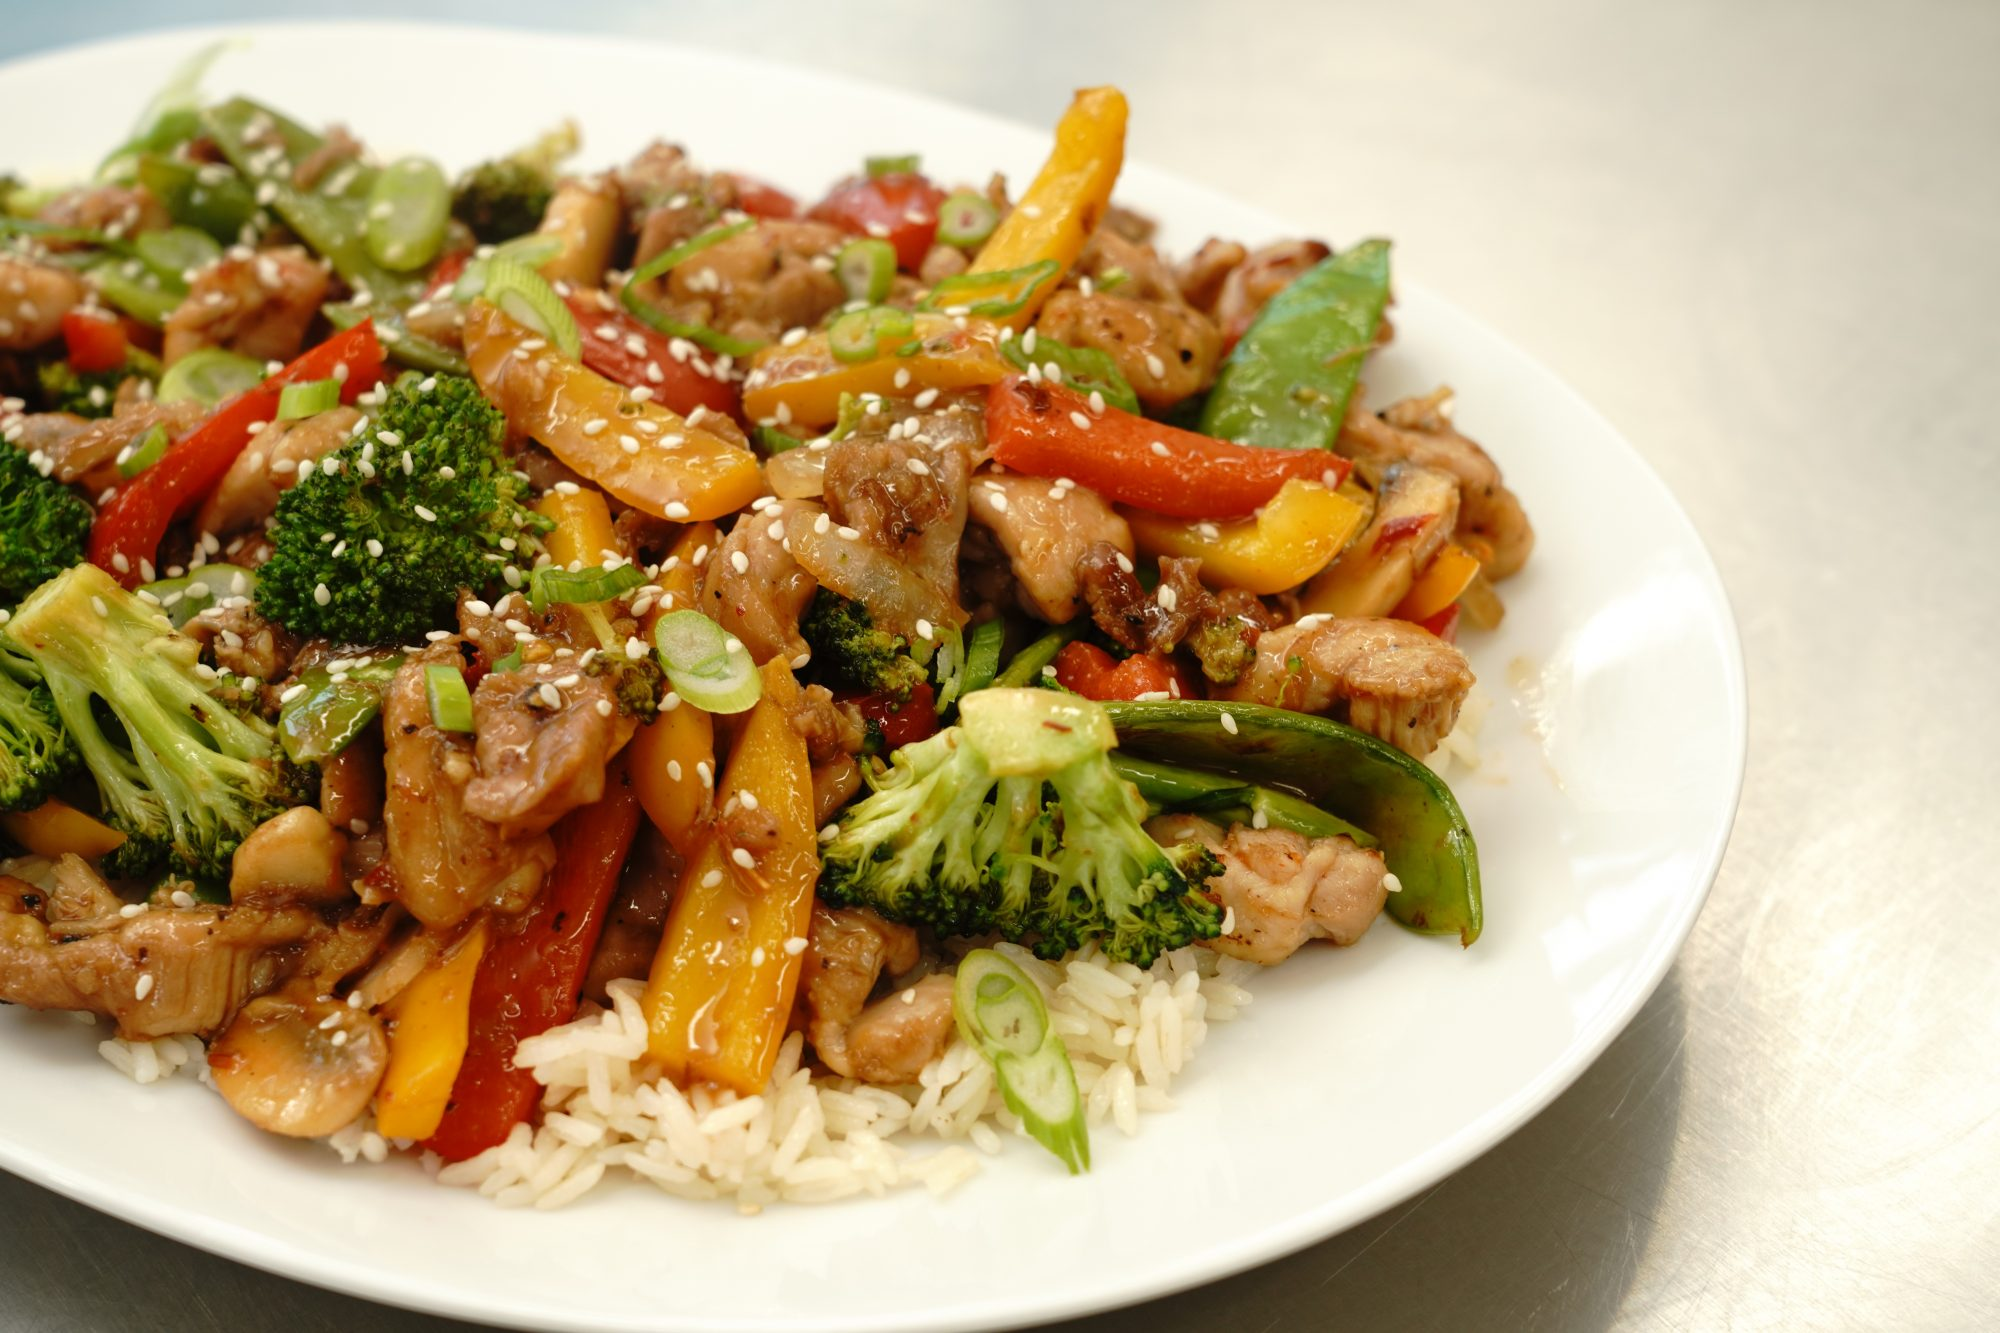 chicken stir fry with vegetables served over rice